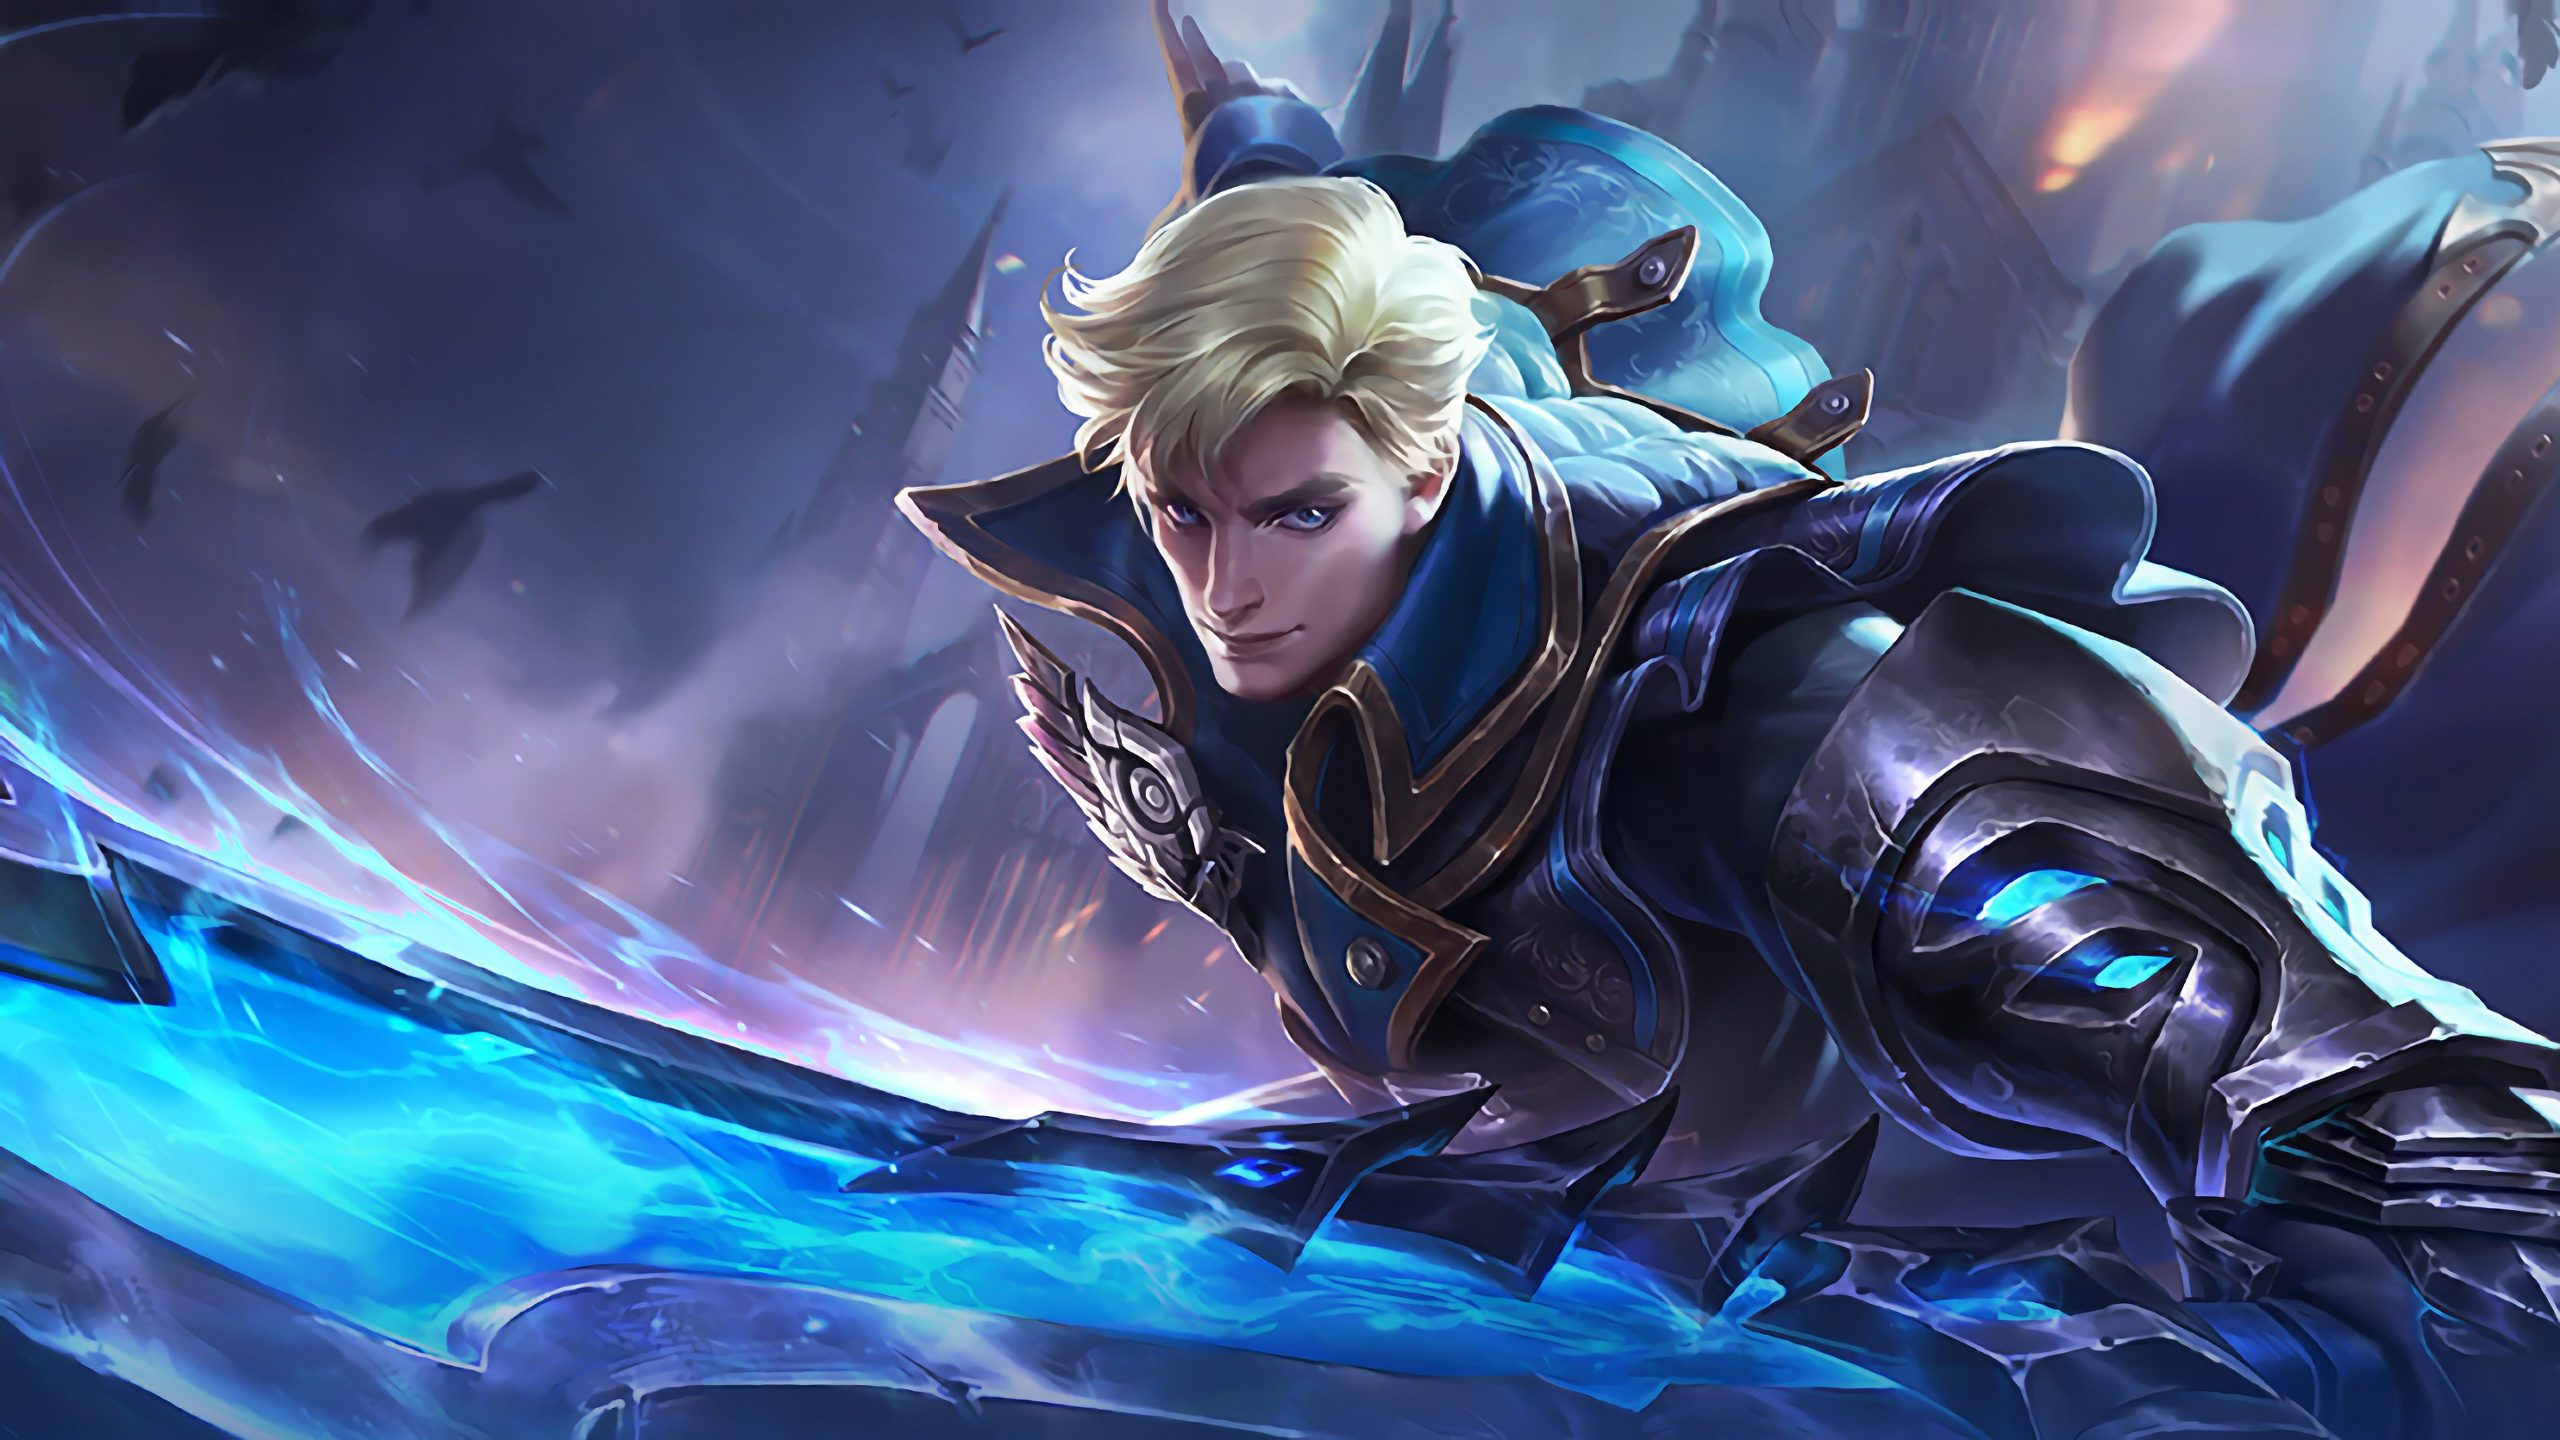 Download Wallpaper Alucard Mobile Legends HD